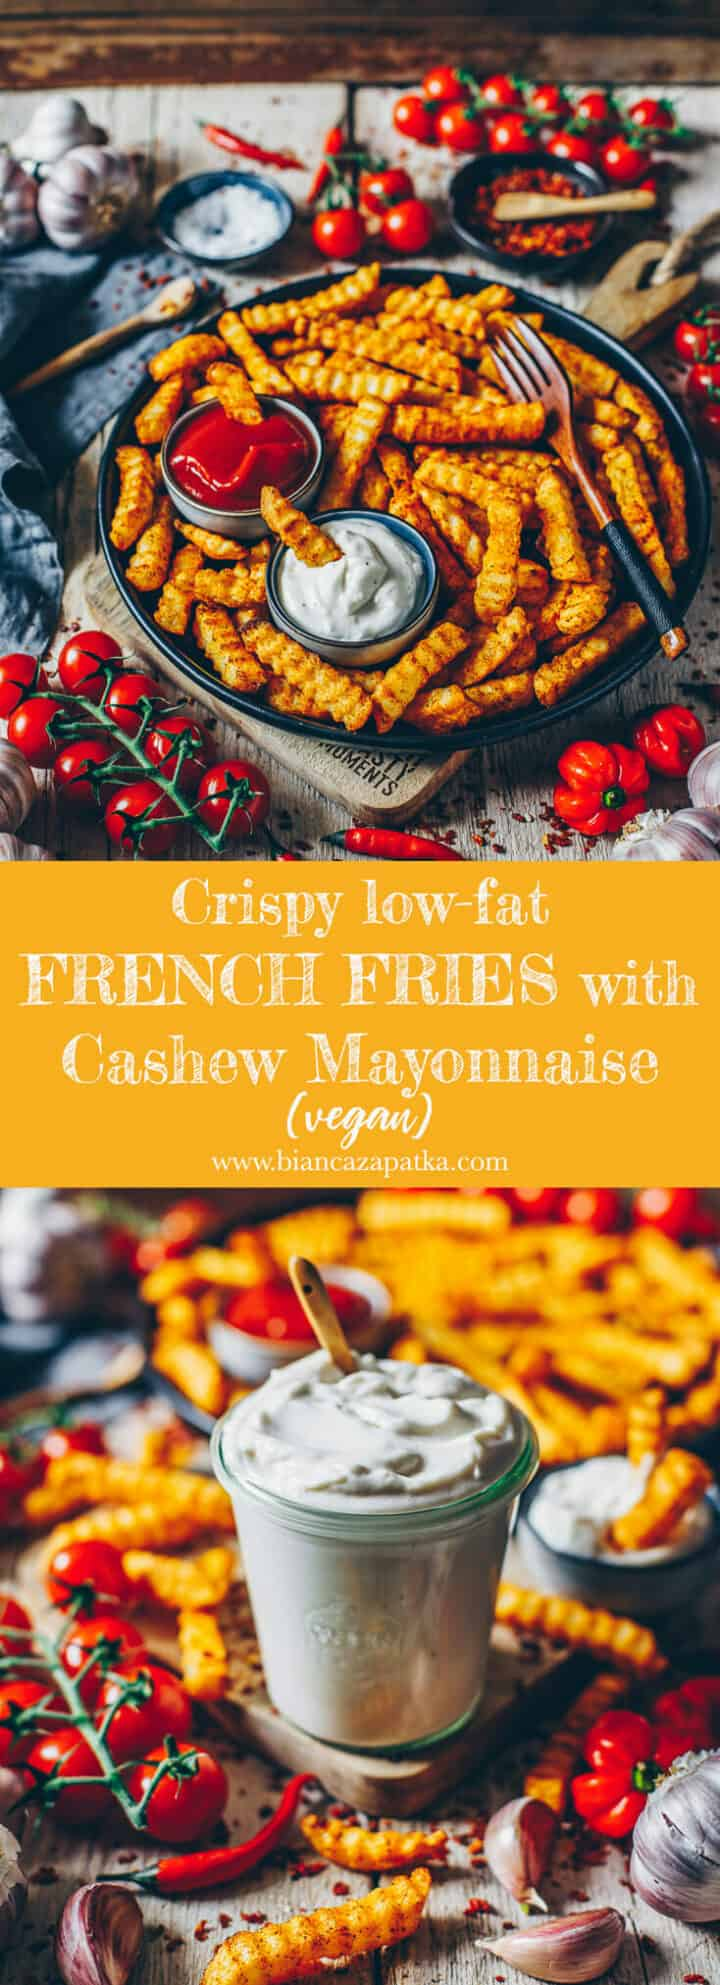 With this recipe, you can easily make super crispy French Fries which are even low-fat. And with a homemade vegan mayonnaise made from cashew nuts for dipping, it's not only a perfect healthy snack for a cozy TV evening but also a delicious side dish to a main course.